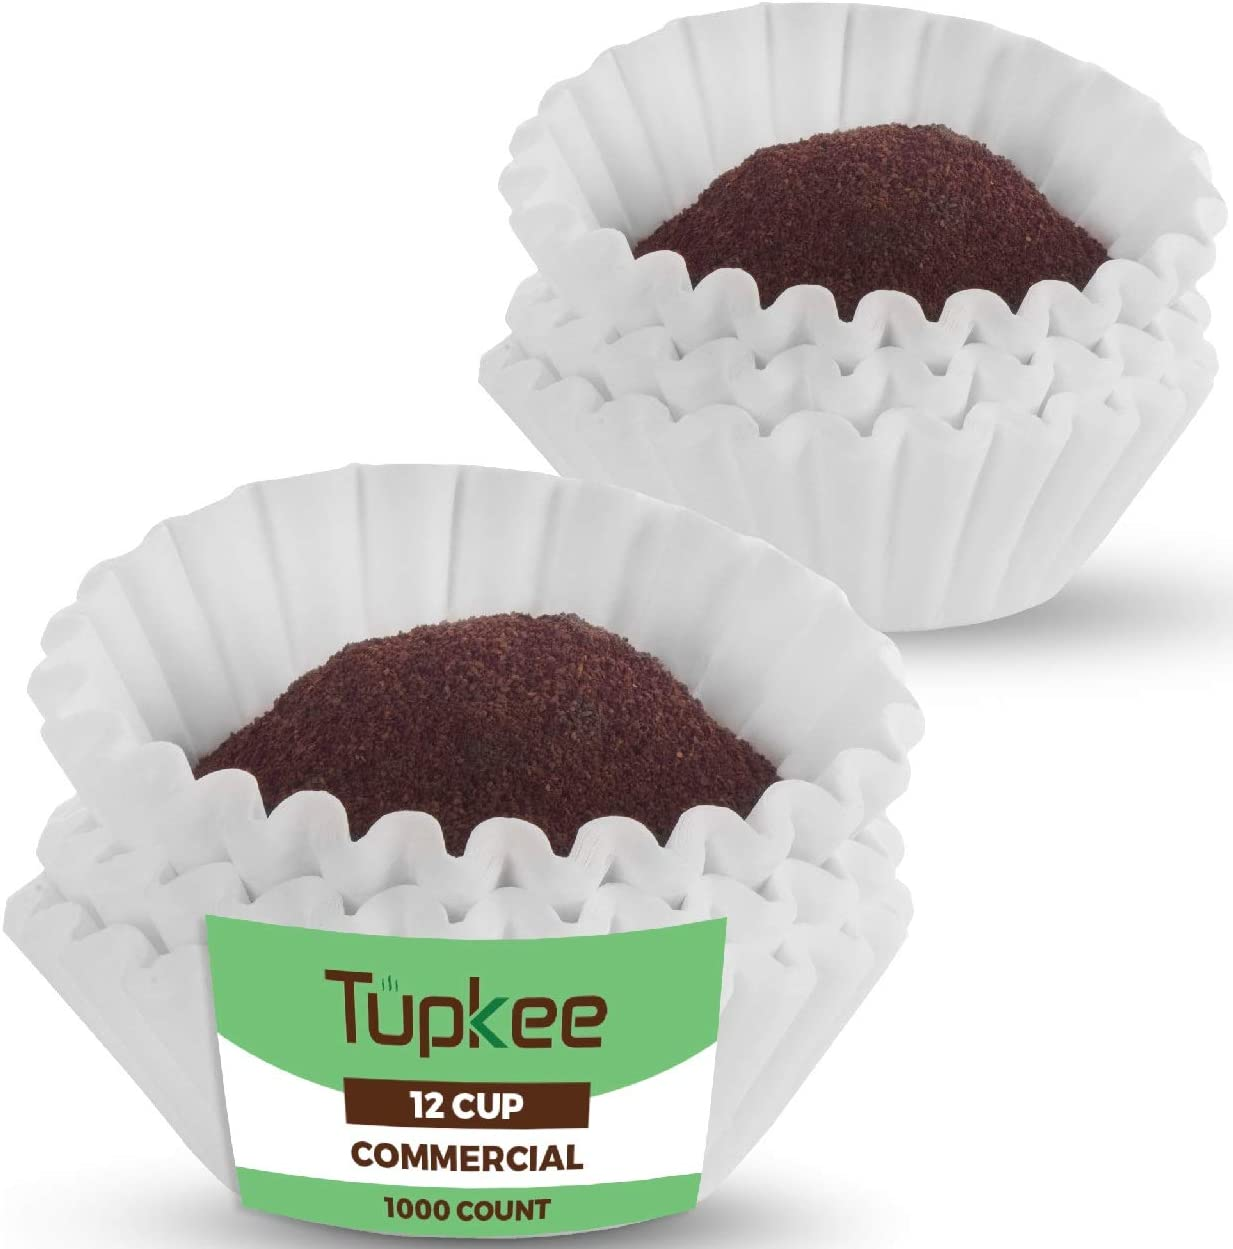 Direct stock discount Tupkee Commercial Large 12-Cup Coffee Cheap sale Coff 1000-Count Filters -